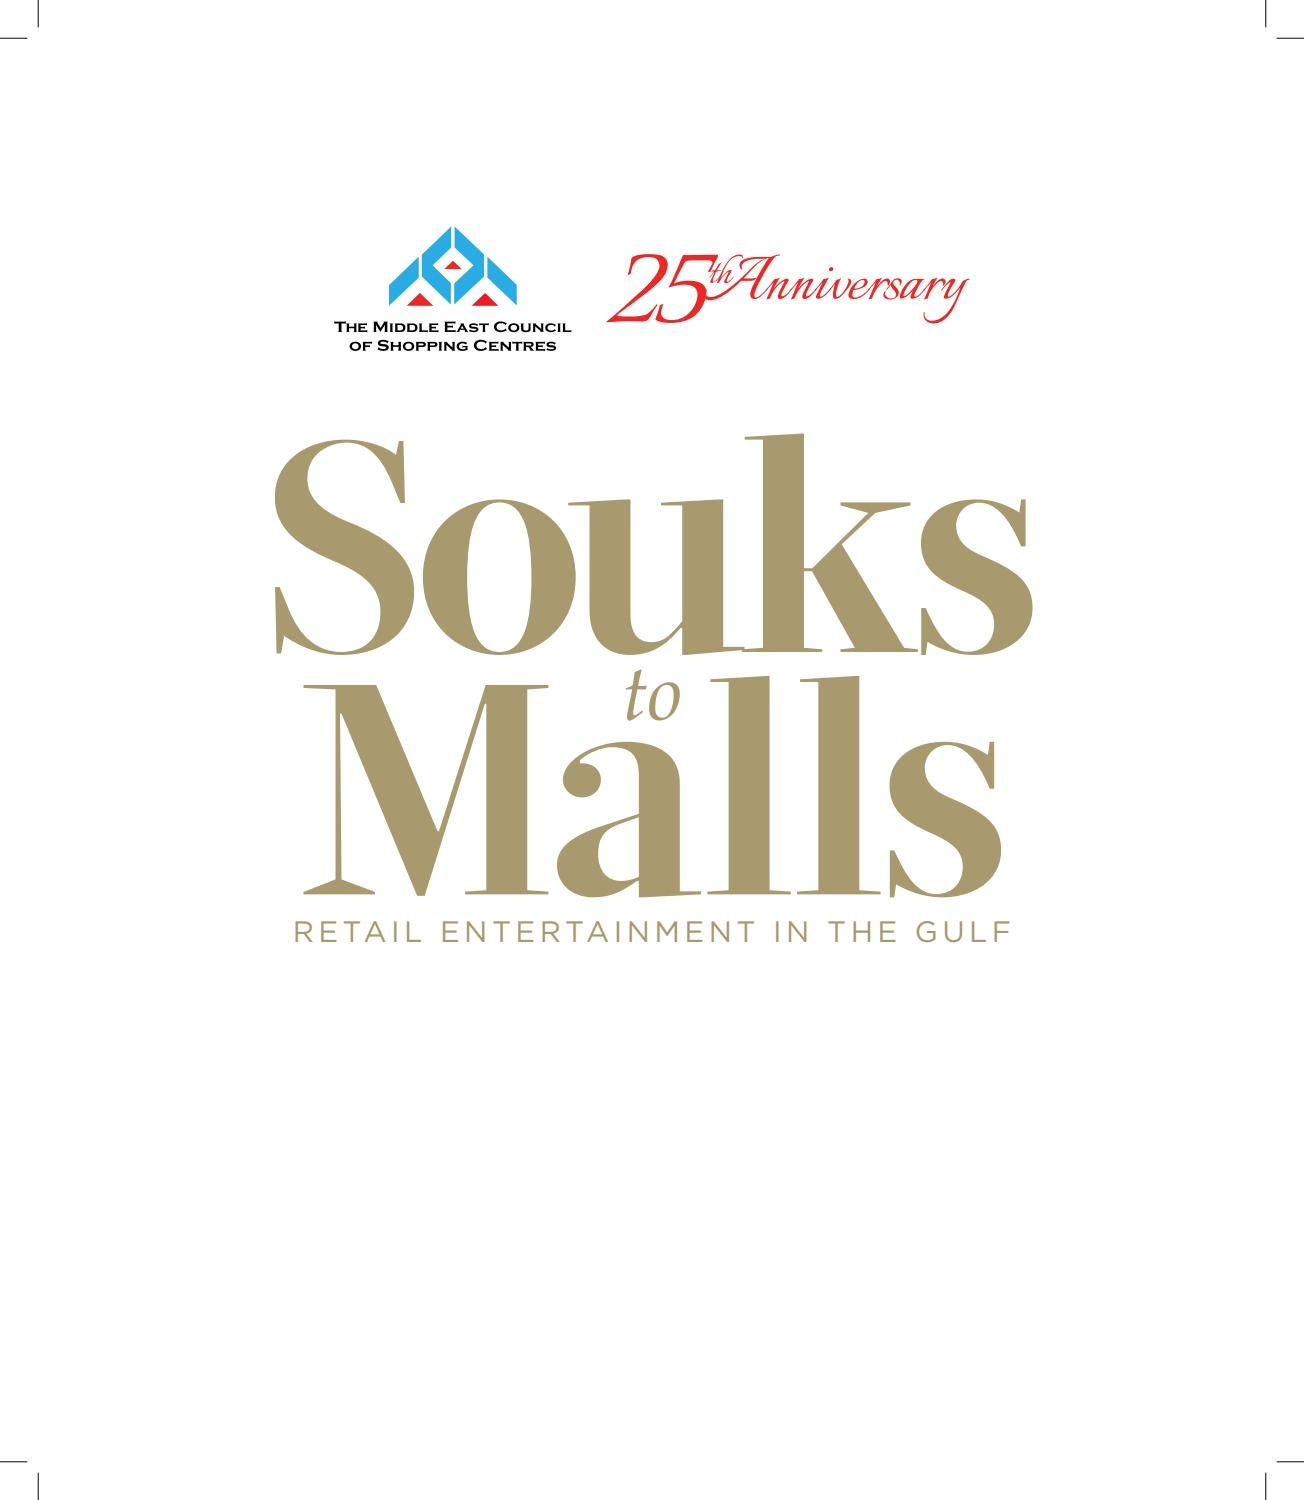 afce2f55f SOUKS to MALLS - RETAIL ENTERTAINMENT IN THE GULF by MECSC Connect - issuu